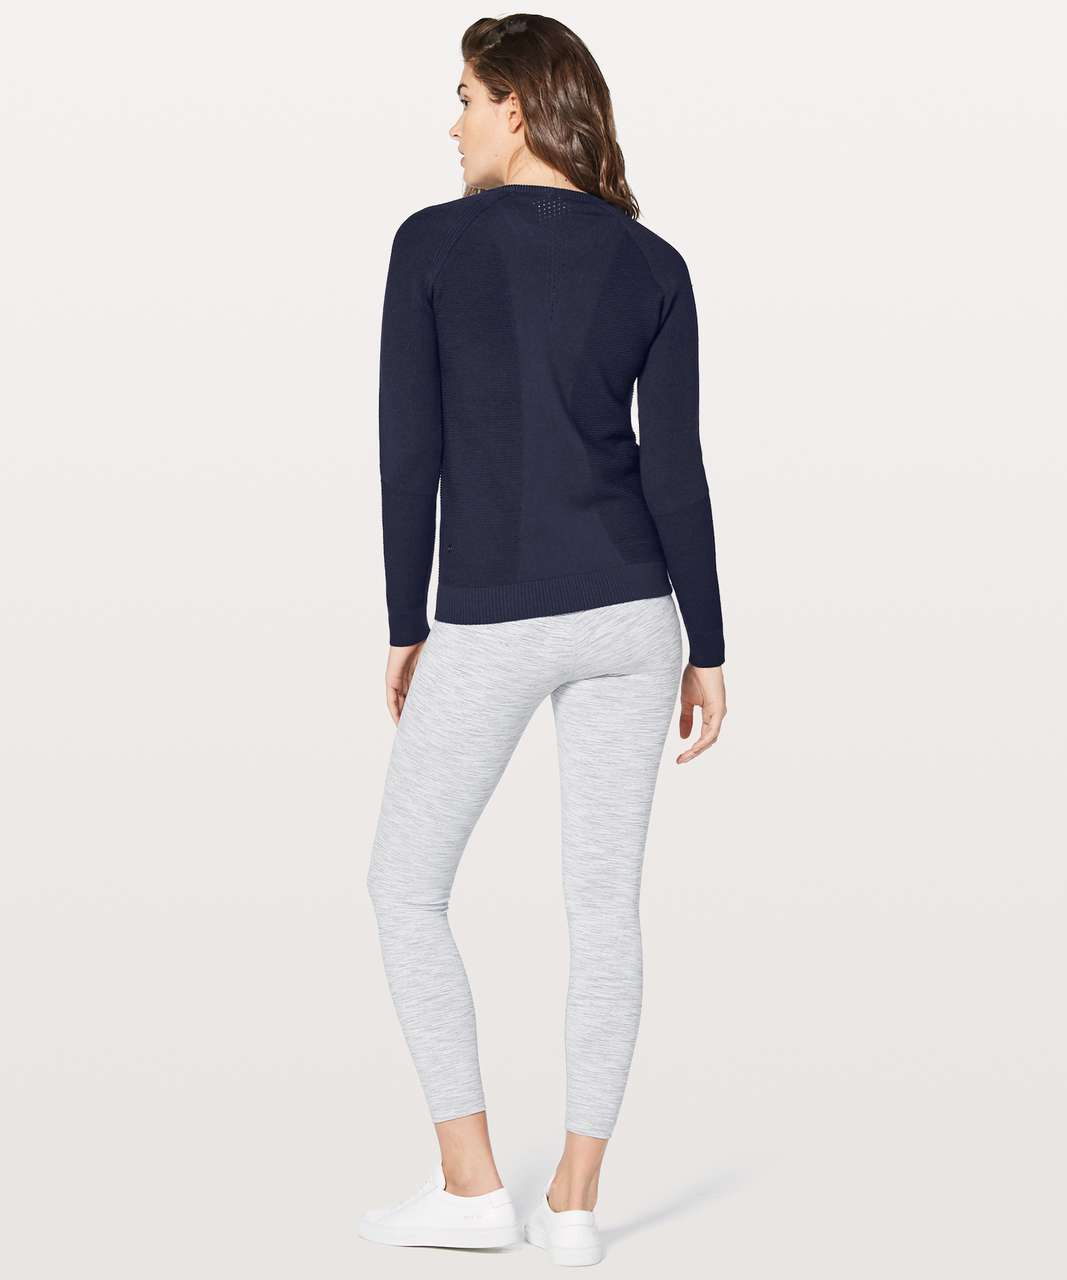 Lululemon Simply Wool Sweater - Midnight Navy